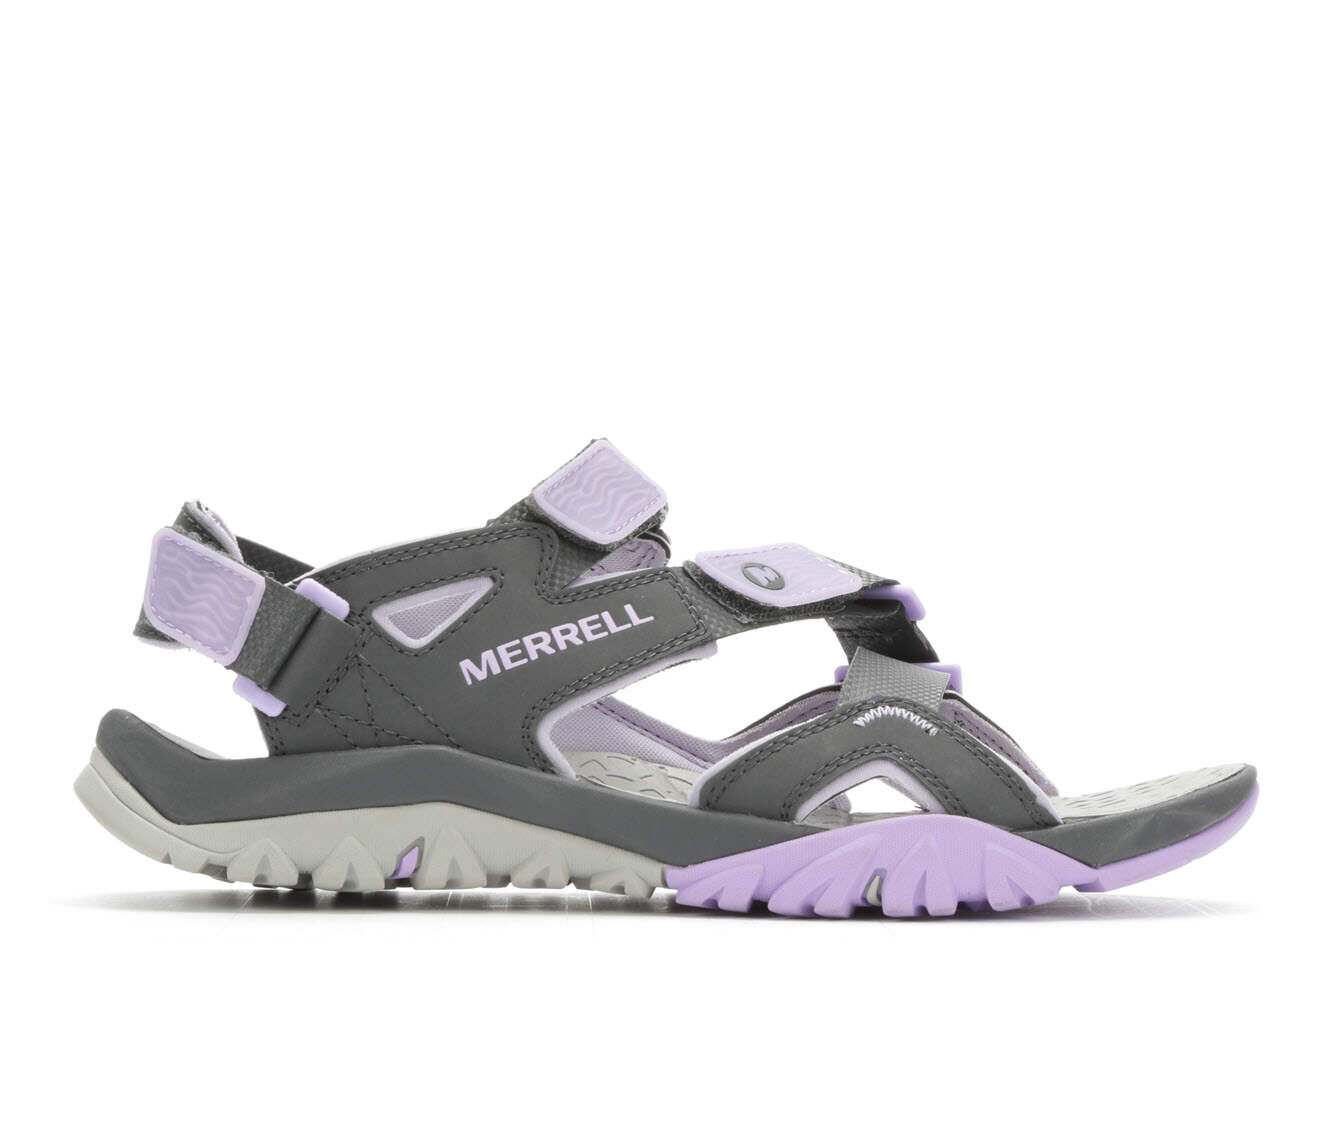 Women's Merrell Tetrex Crest Strap Sandals cheap sale perfect clearance sale online free shipping reliable OhlMczuEH